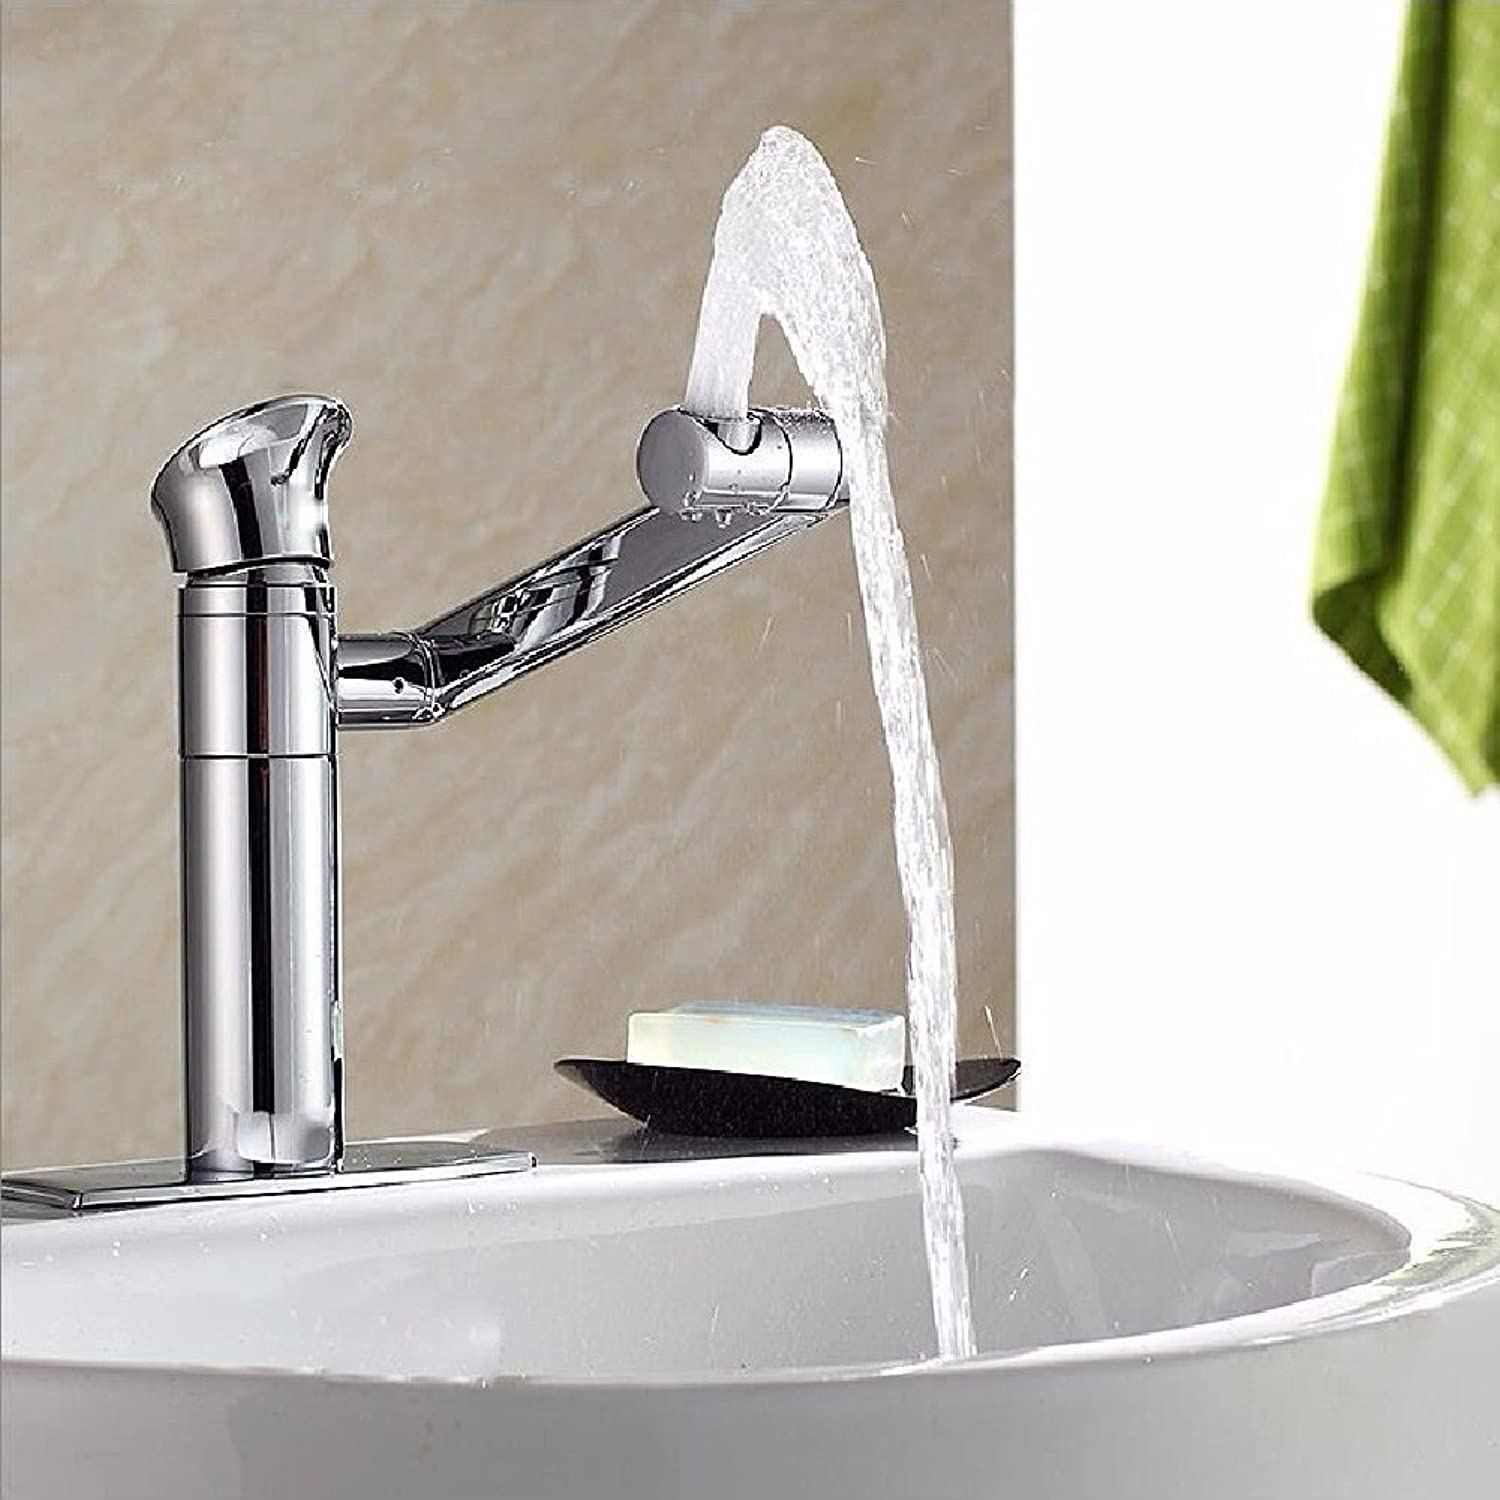 Lalaky Taps Faucet Kitchen Mixer Sink Waterfall Bathroom Mixer Basin Mixer Tap for Kitchen Bathroom and Washroom Copper Double Hole Three Holes Hot and Cold redation